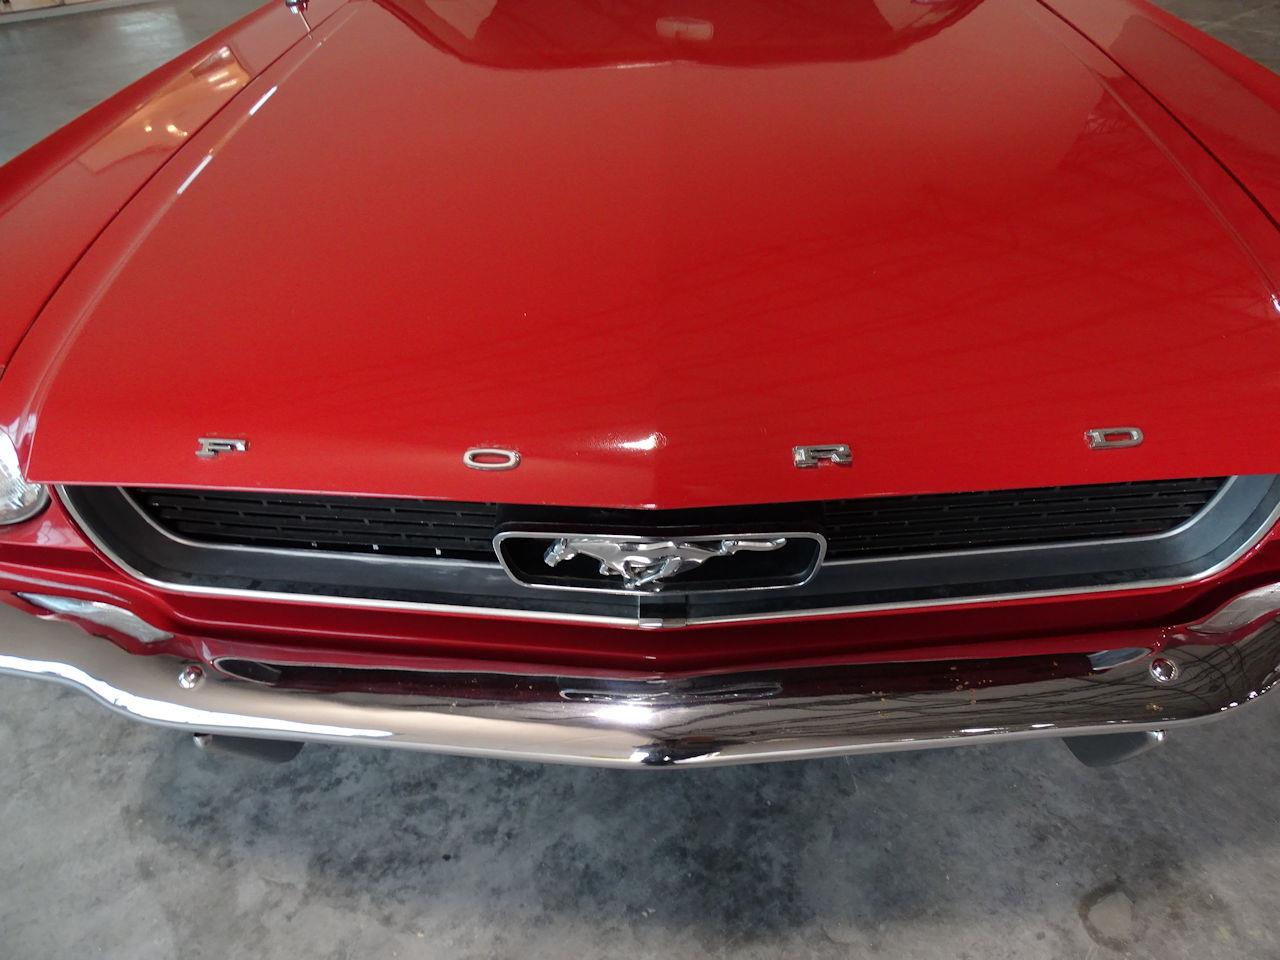 Large Picture of 1966 Ford Mustang located in Texas Offered by Gateway Classic Cars - Houston - MO4X